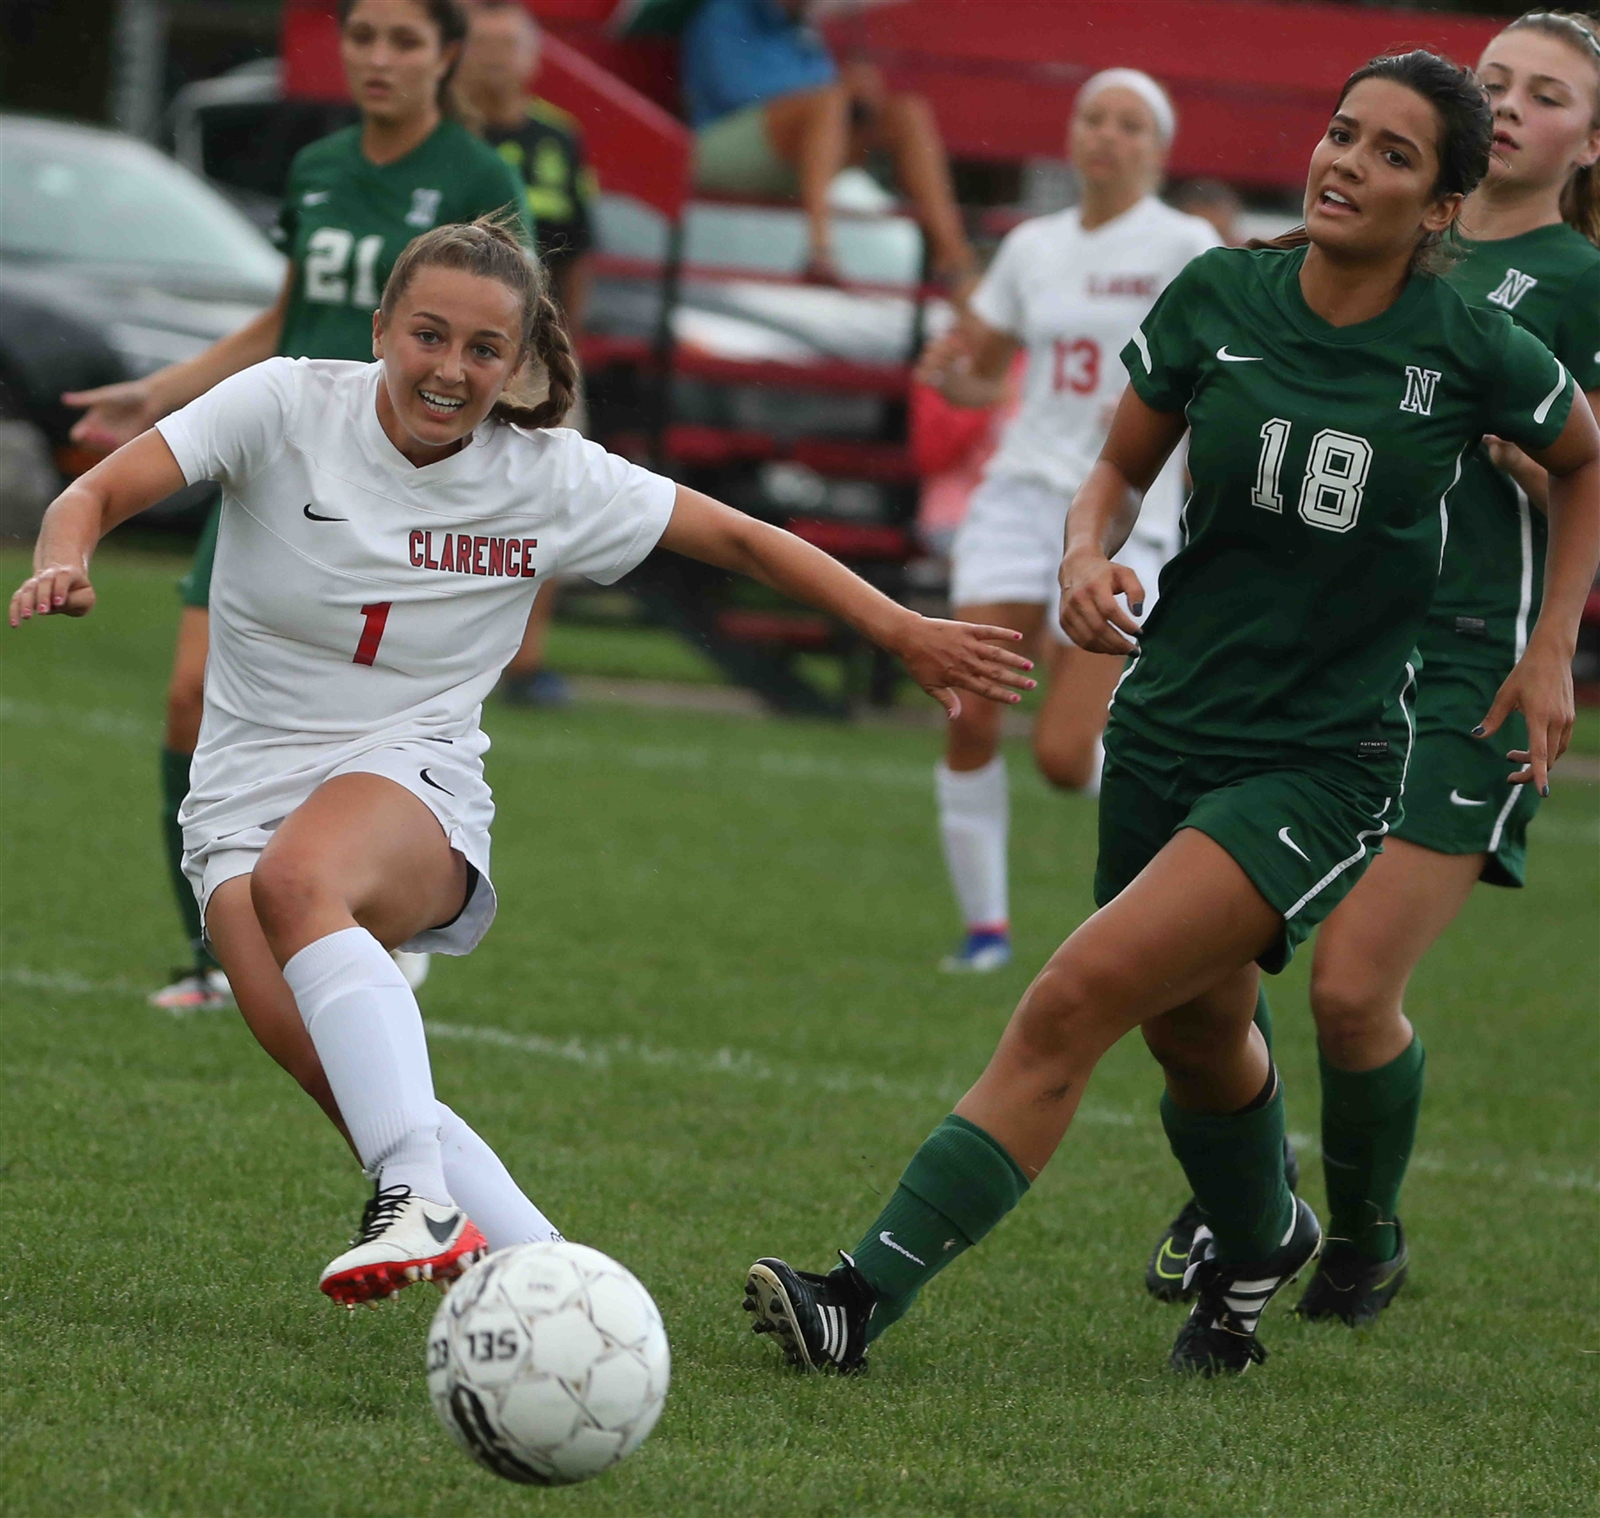 Clarence's Riley Bowers battles Emma Biachi for the ball.